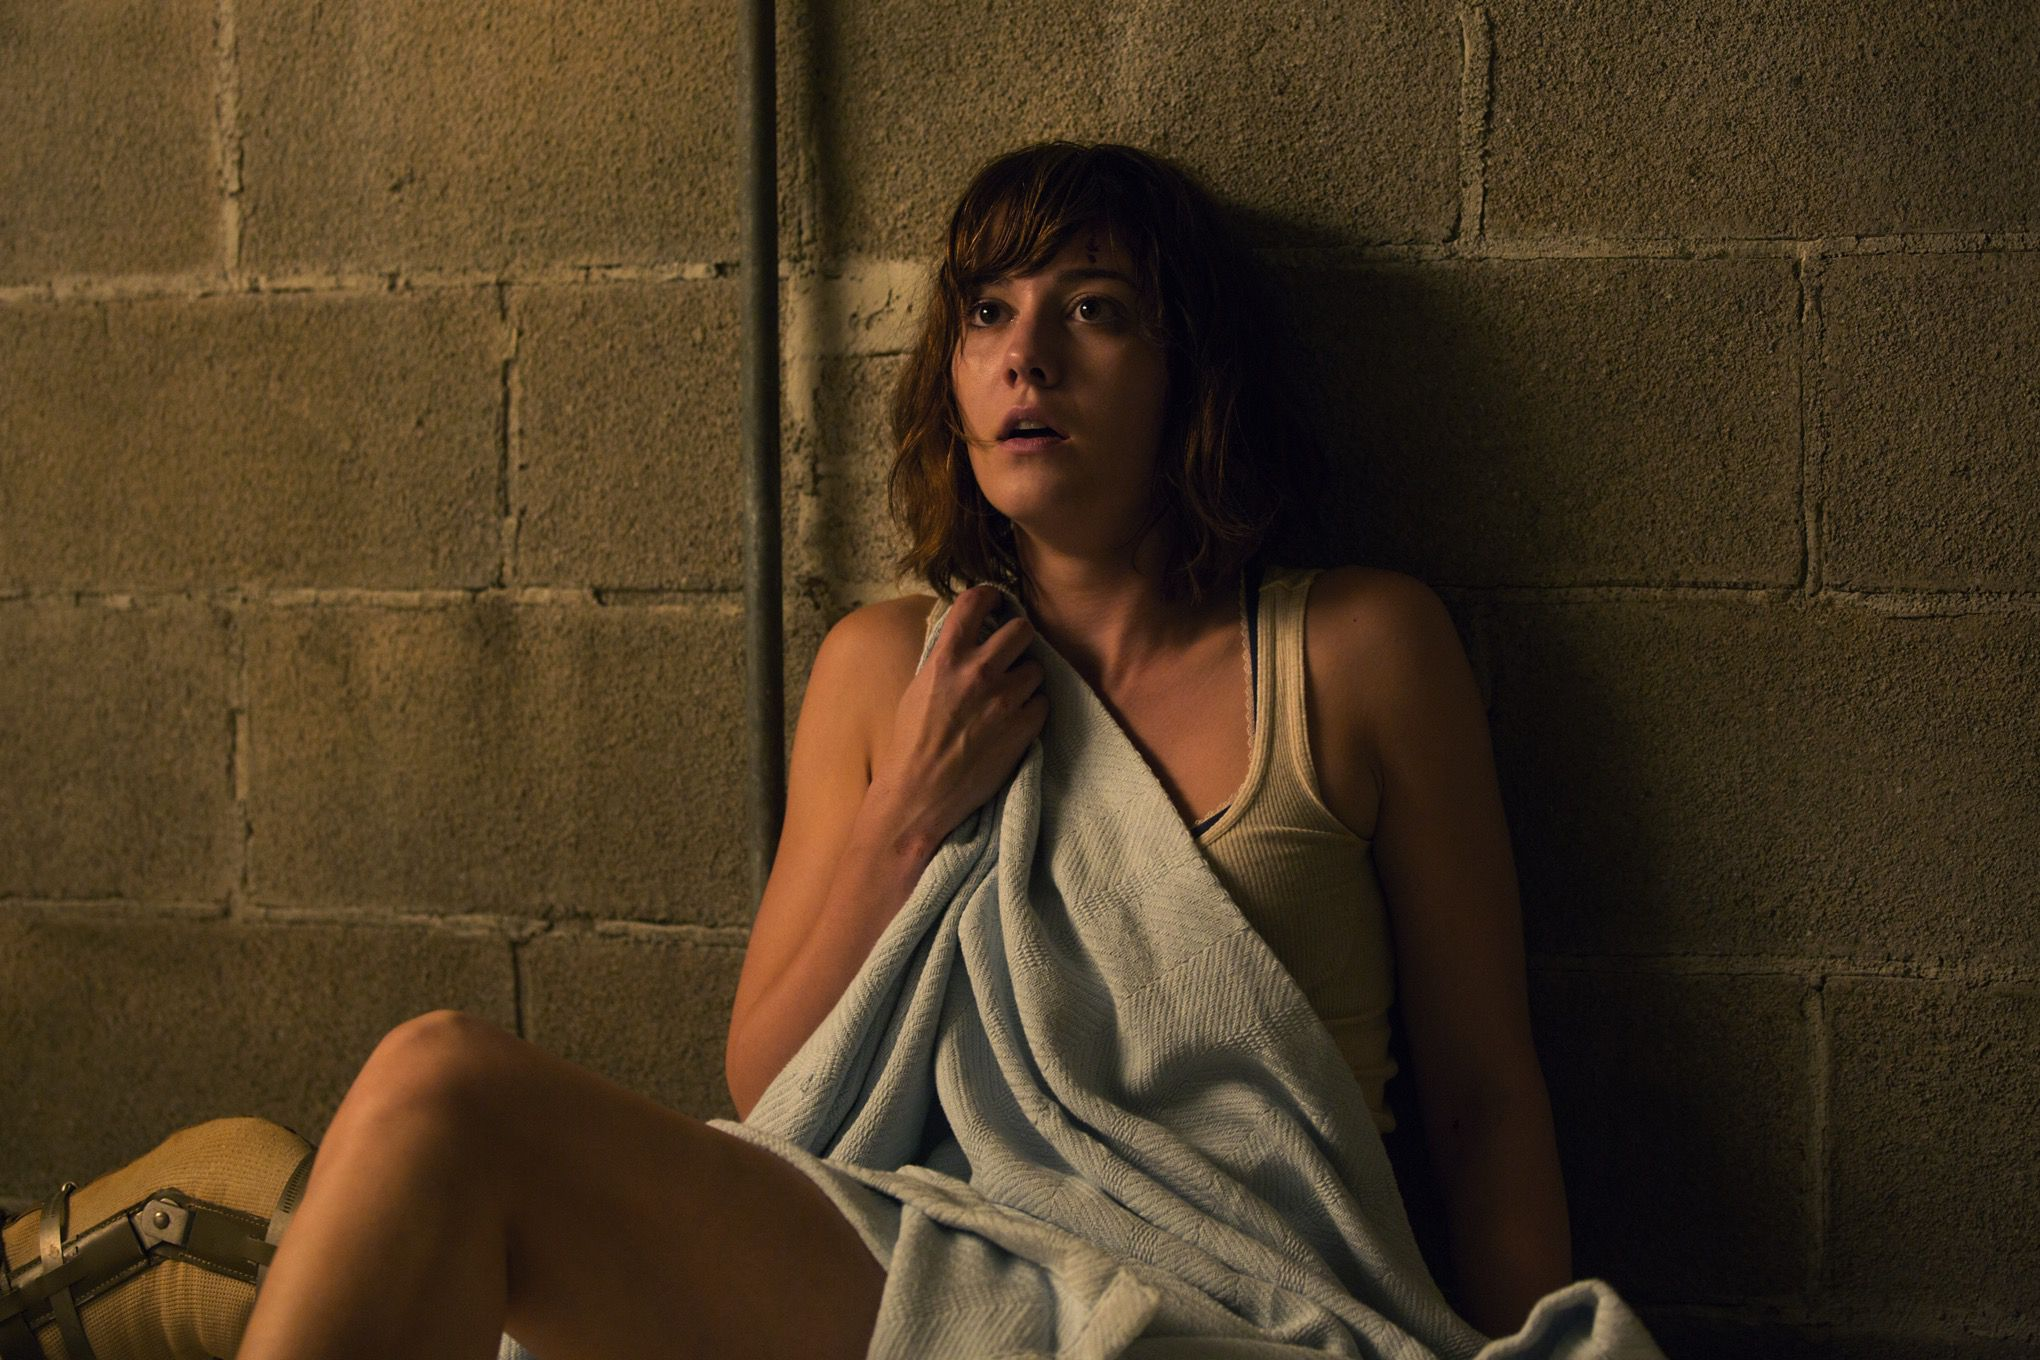 10 Cloverfield Lane promotional images (PARAMOUNT)